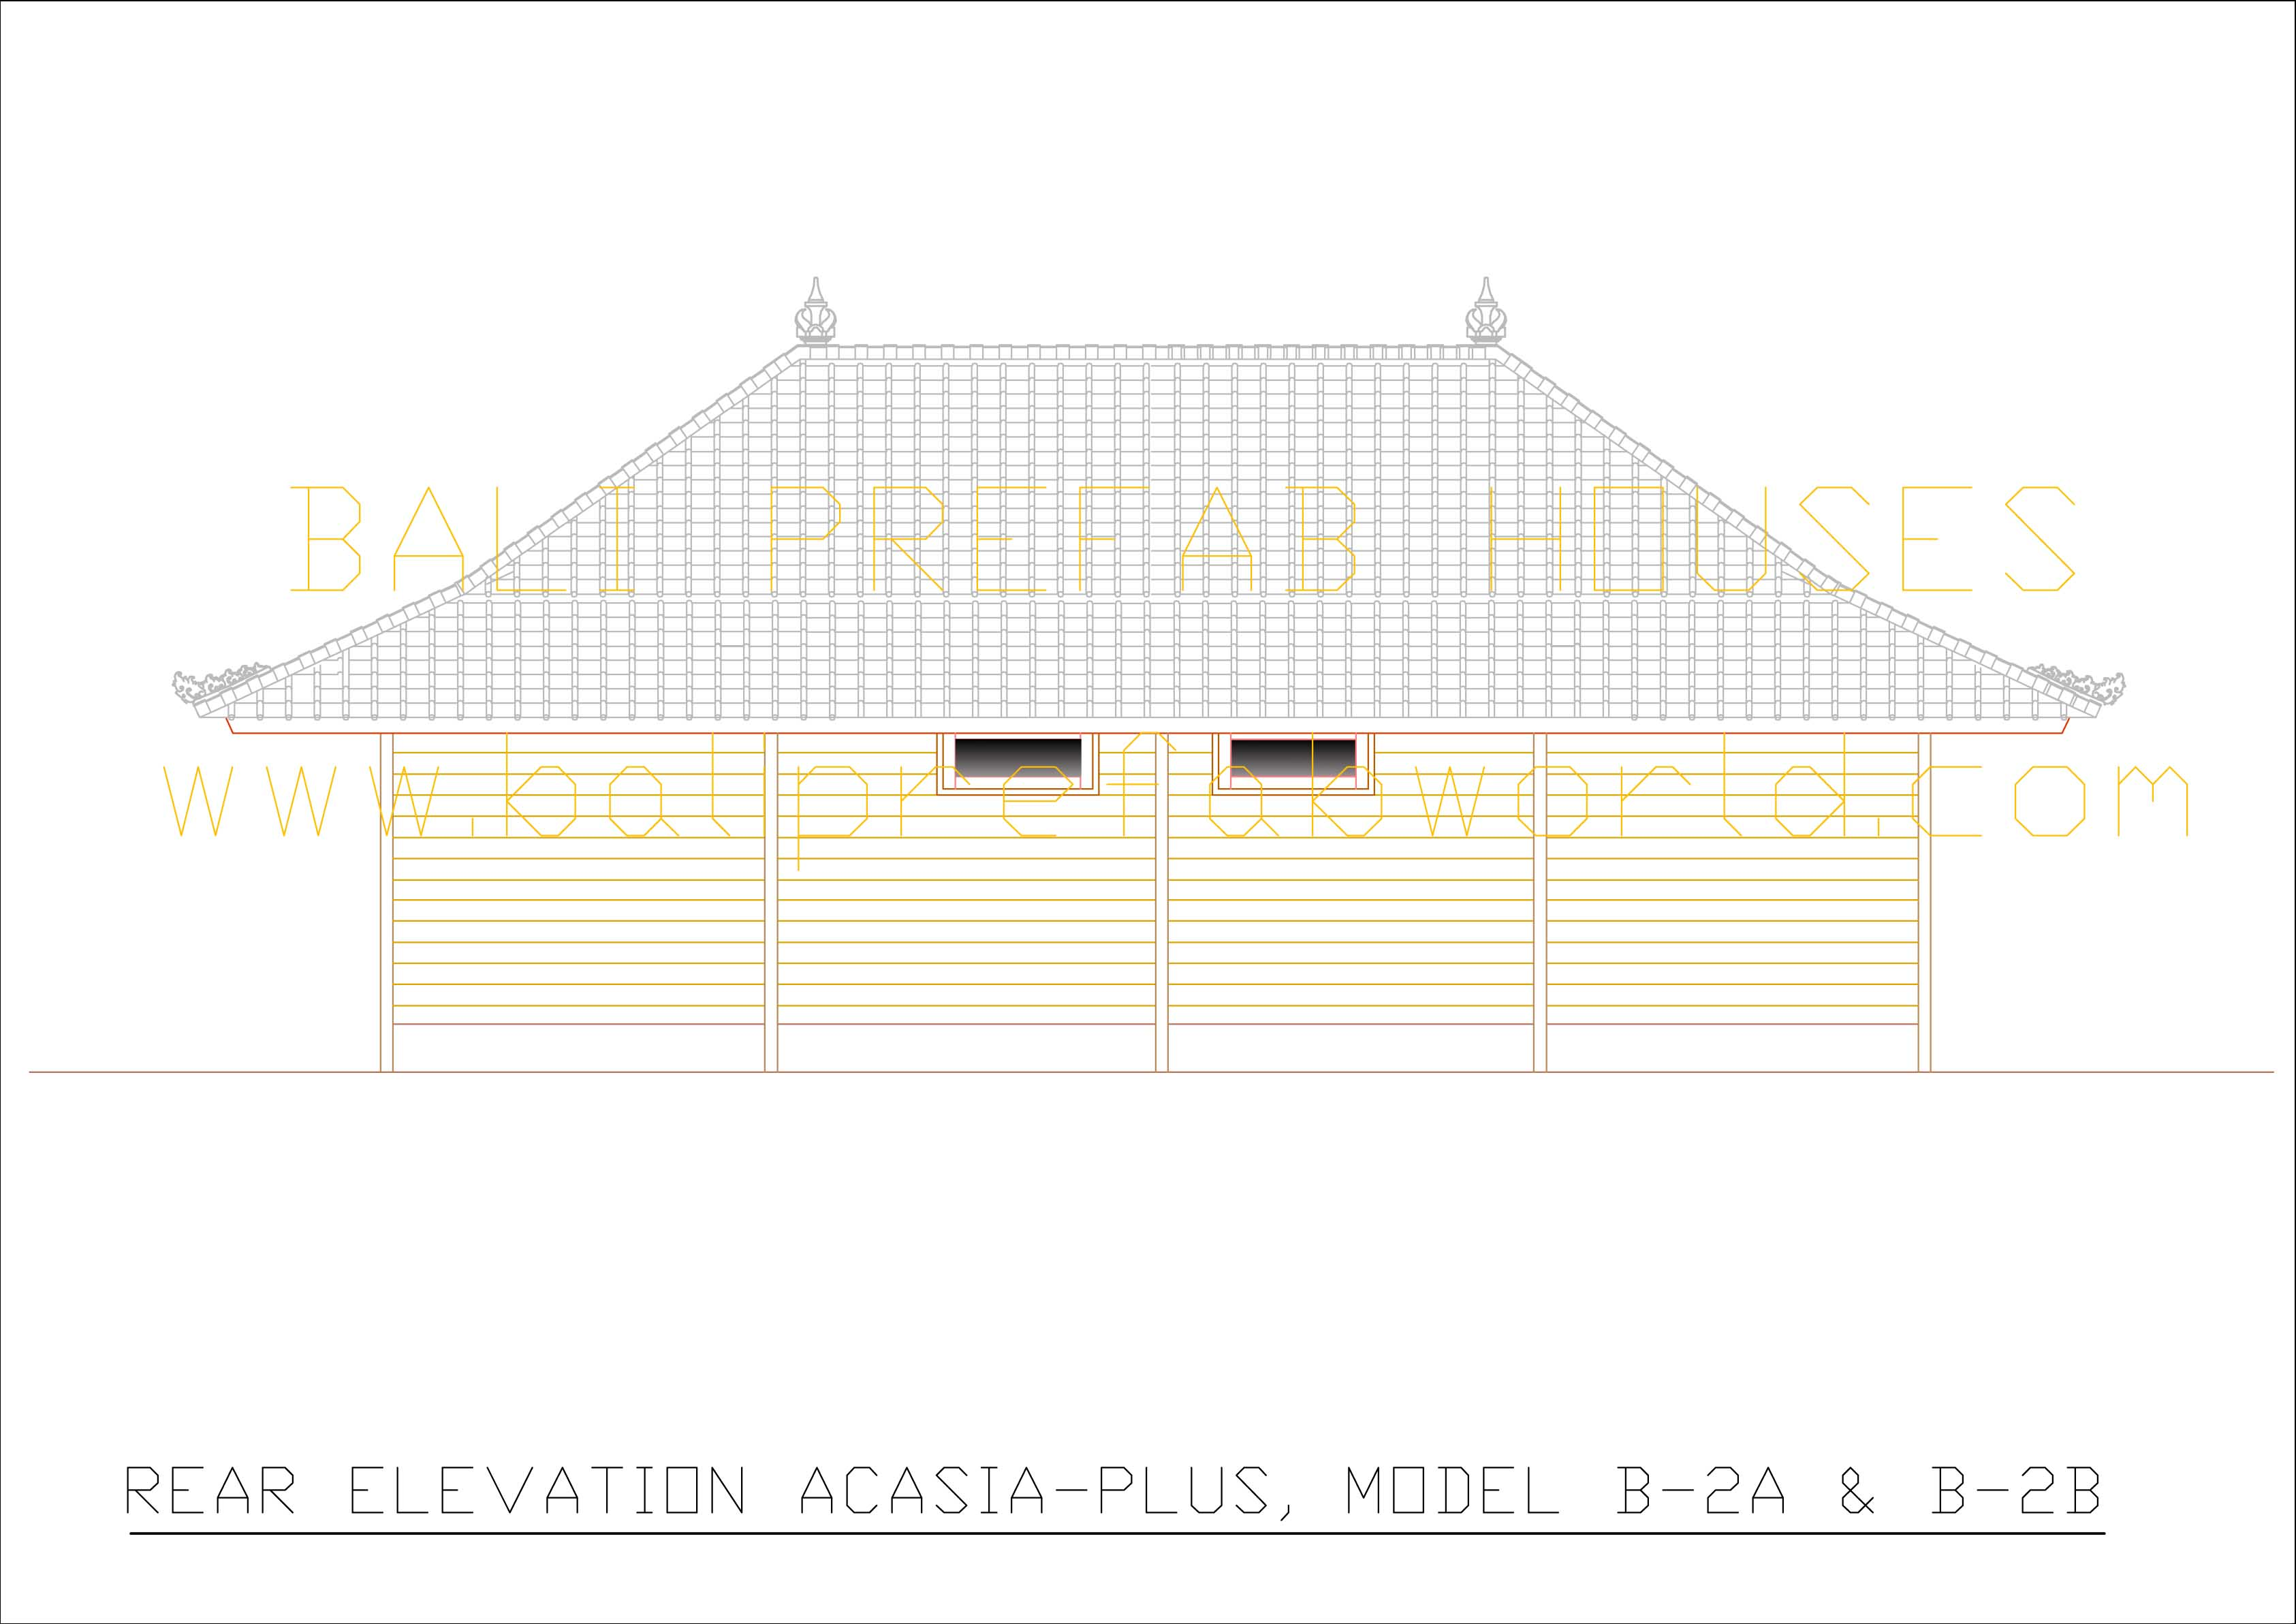 Acasia-plus rear elevation